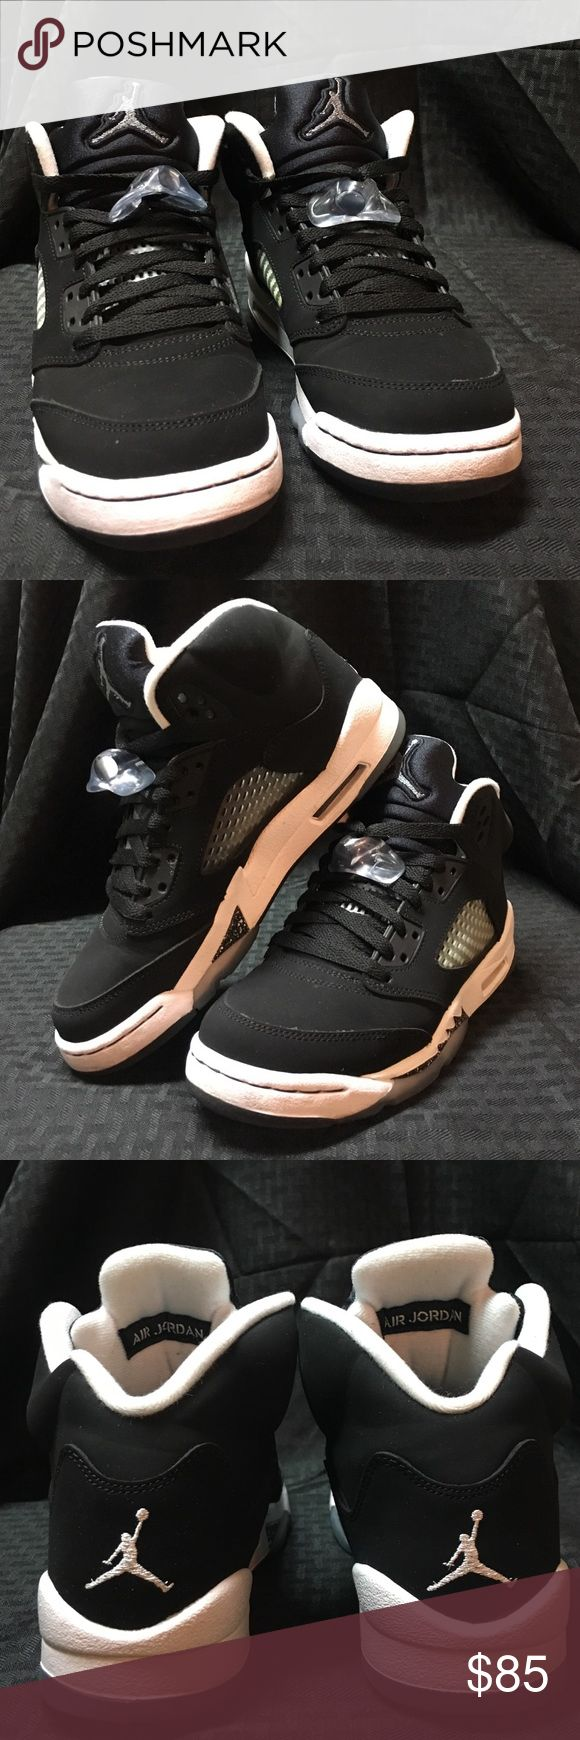 """Air Jordan Retro 5 👟Black/White Air Jordan """"Oreo"""" Retro 5's with ice bottoms (Black Friday 2013 release) 👟Used - 8/10 condition: creasing in toe boxes; ice bottoms yellowing/browning 👟Men's/Kids' size 5 equivalent to Women's size 6.5  Note: All shoes do come with their original boxes unless otherwise noted. And if you decide to make a purchase, the shoes will be cleaned before shipping. Jordan Shoes Sneakers"""